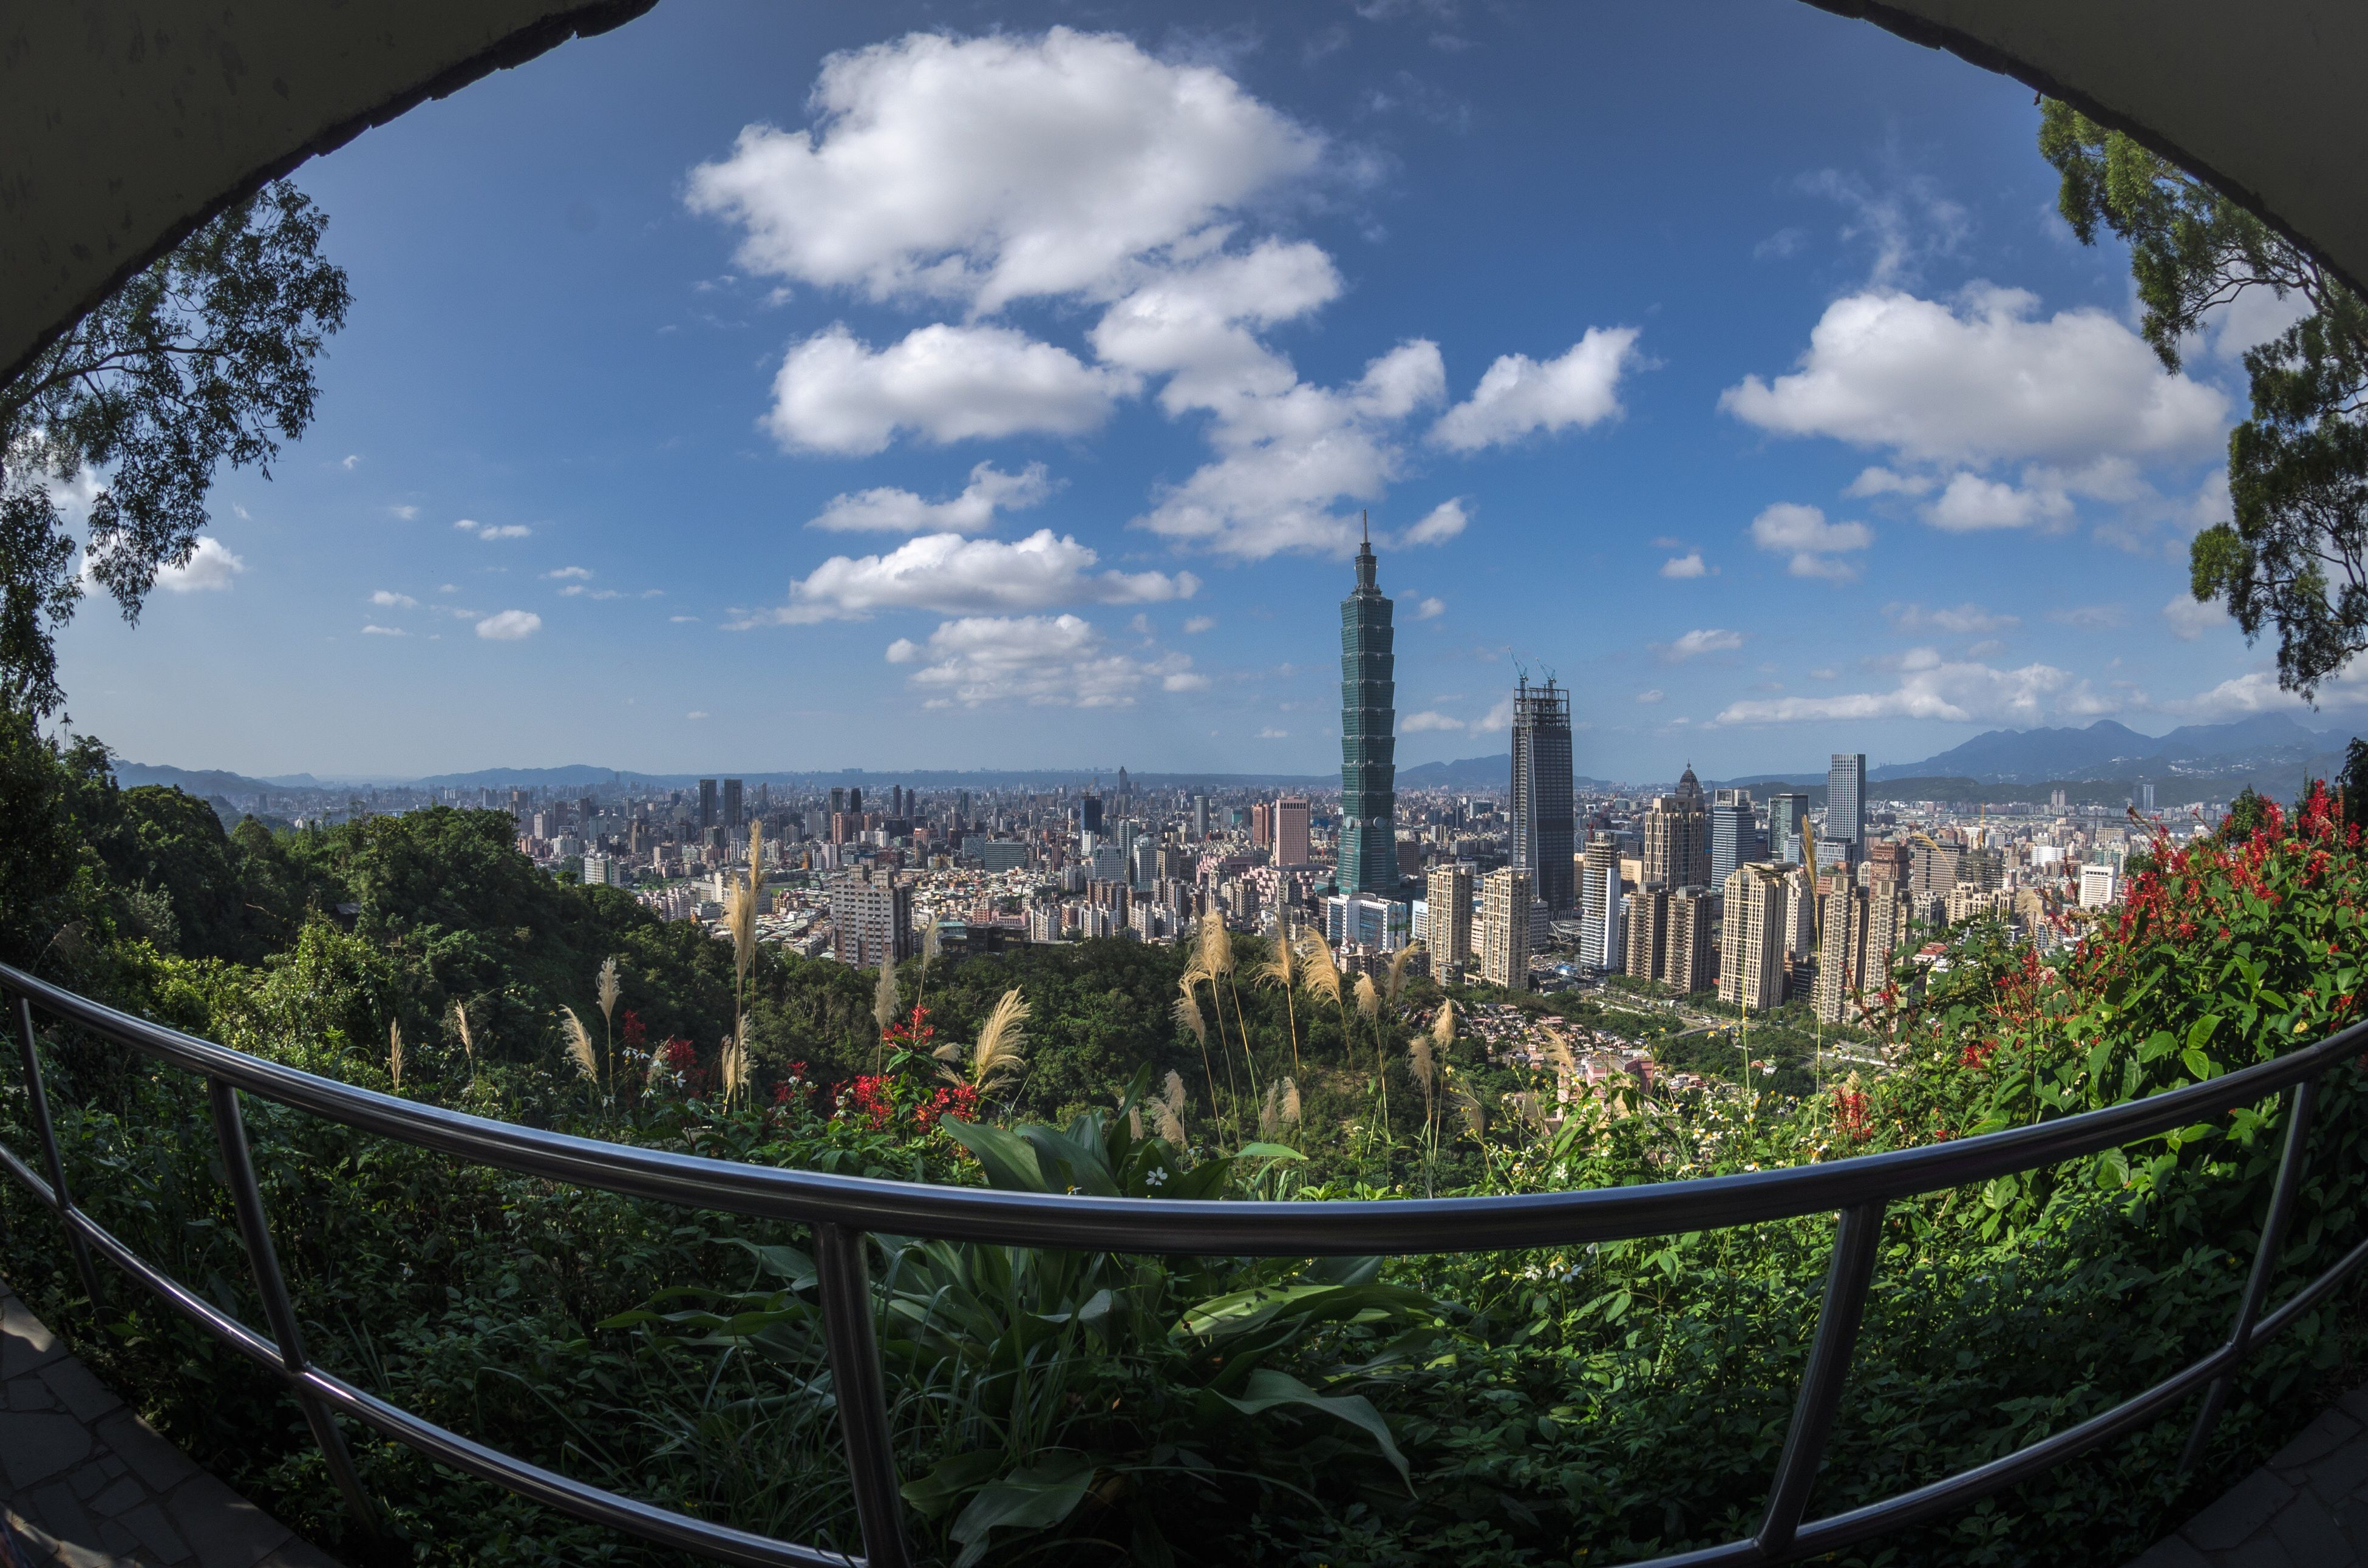 city, architecture, tree, travel destinations, high angle view, growth, sky, building exterior, city life, built structure, outdoors, cityscape, fish-eye lens, skyscraper, urban skyline, day, no people